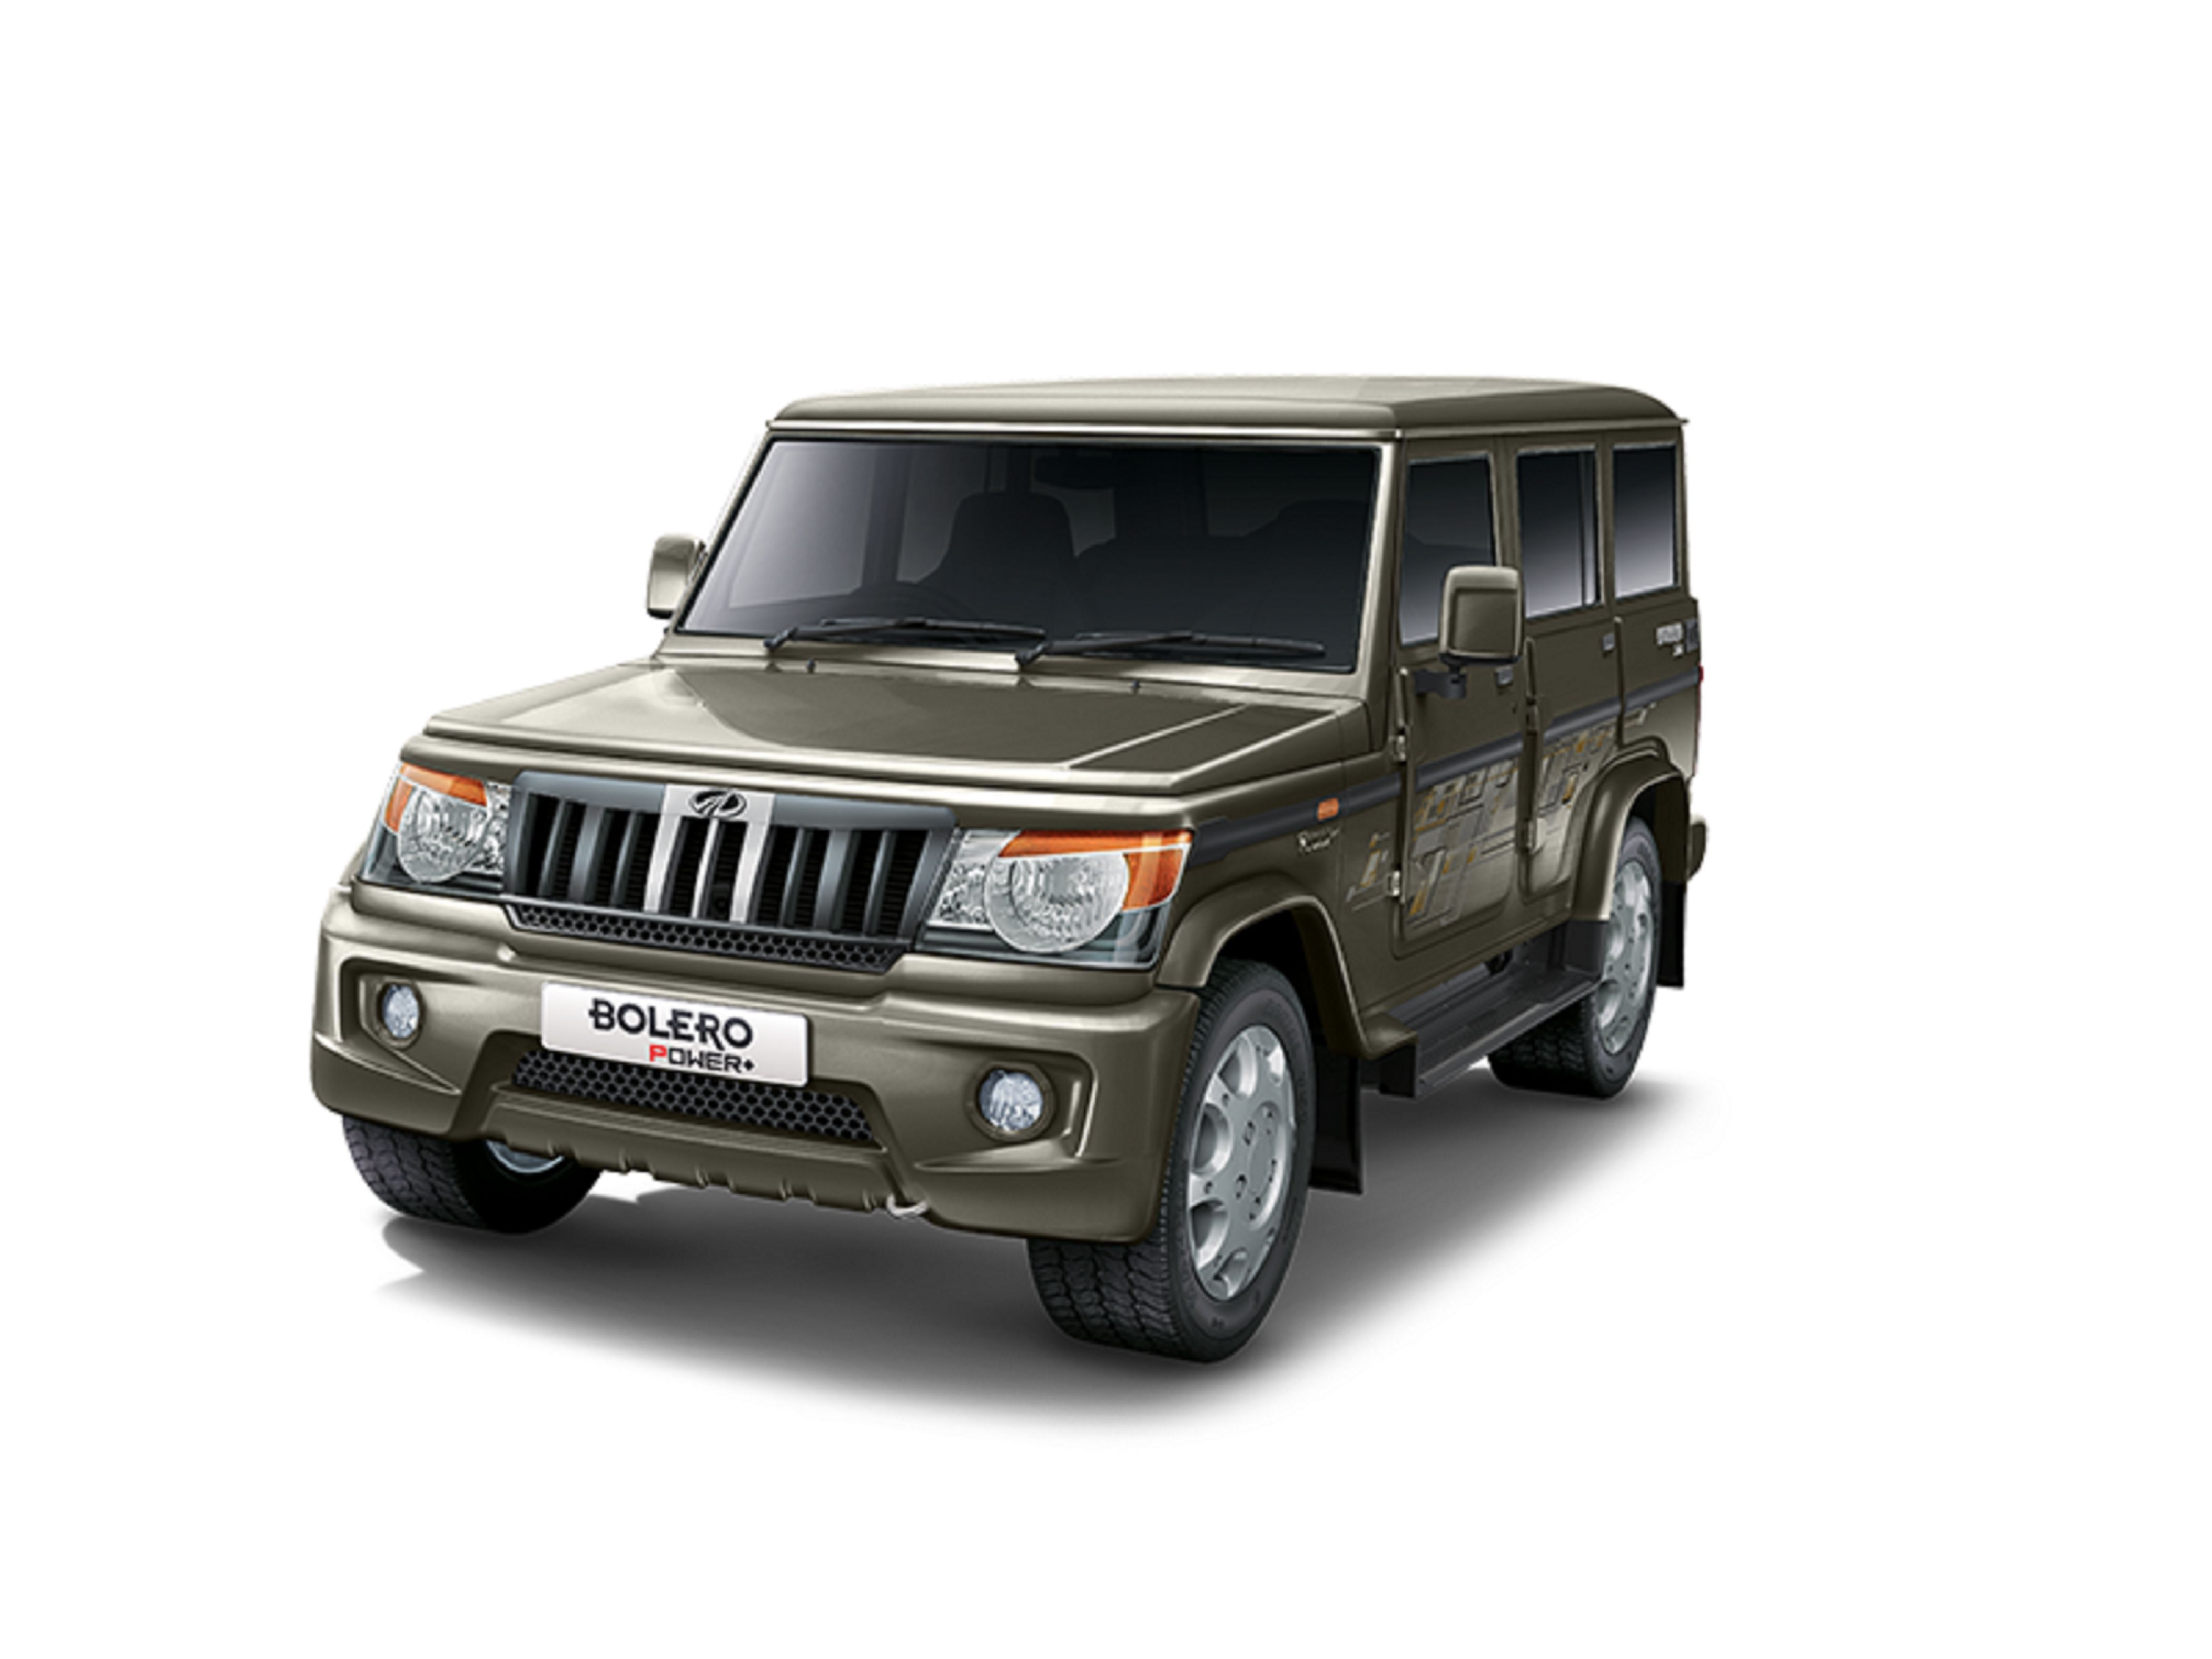 Best Selling Mahindra Bolero In 2020 Bolero Reverse Parking